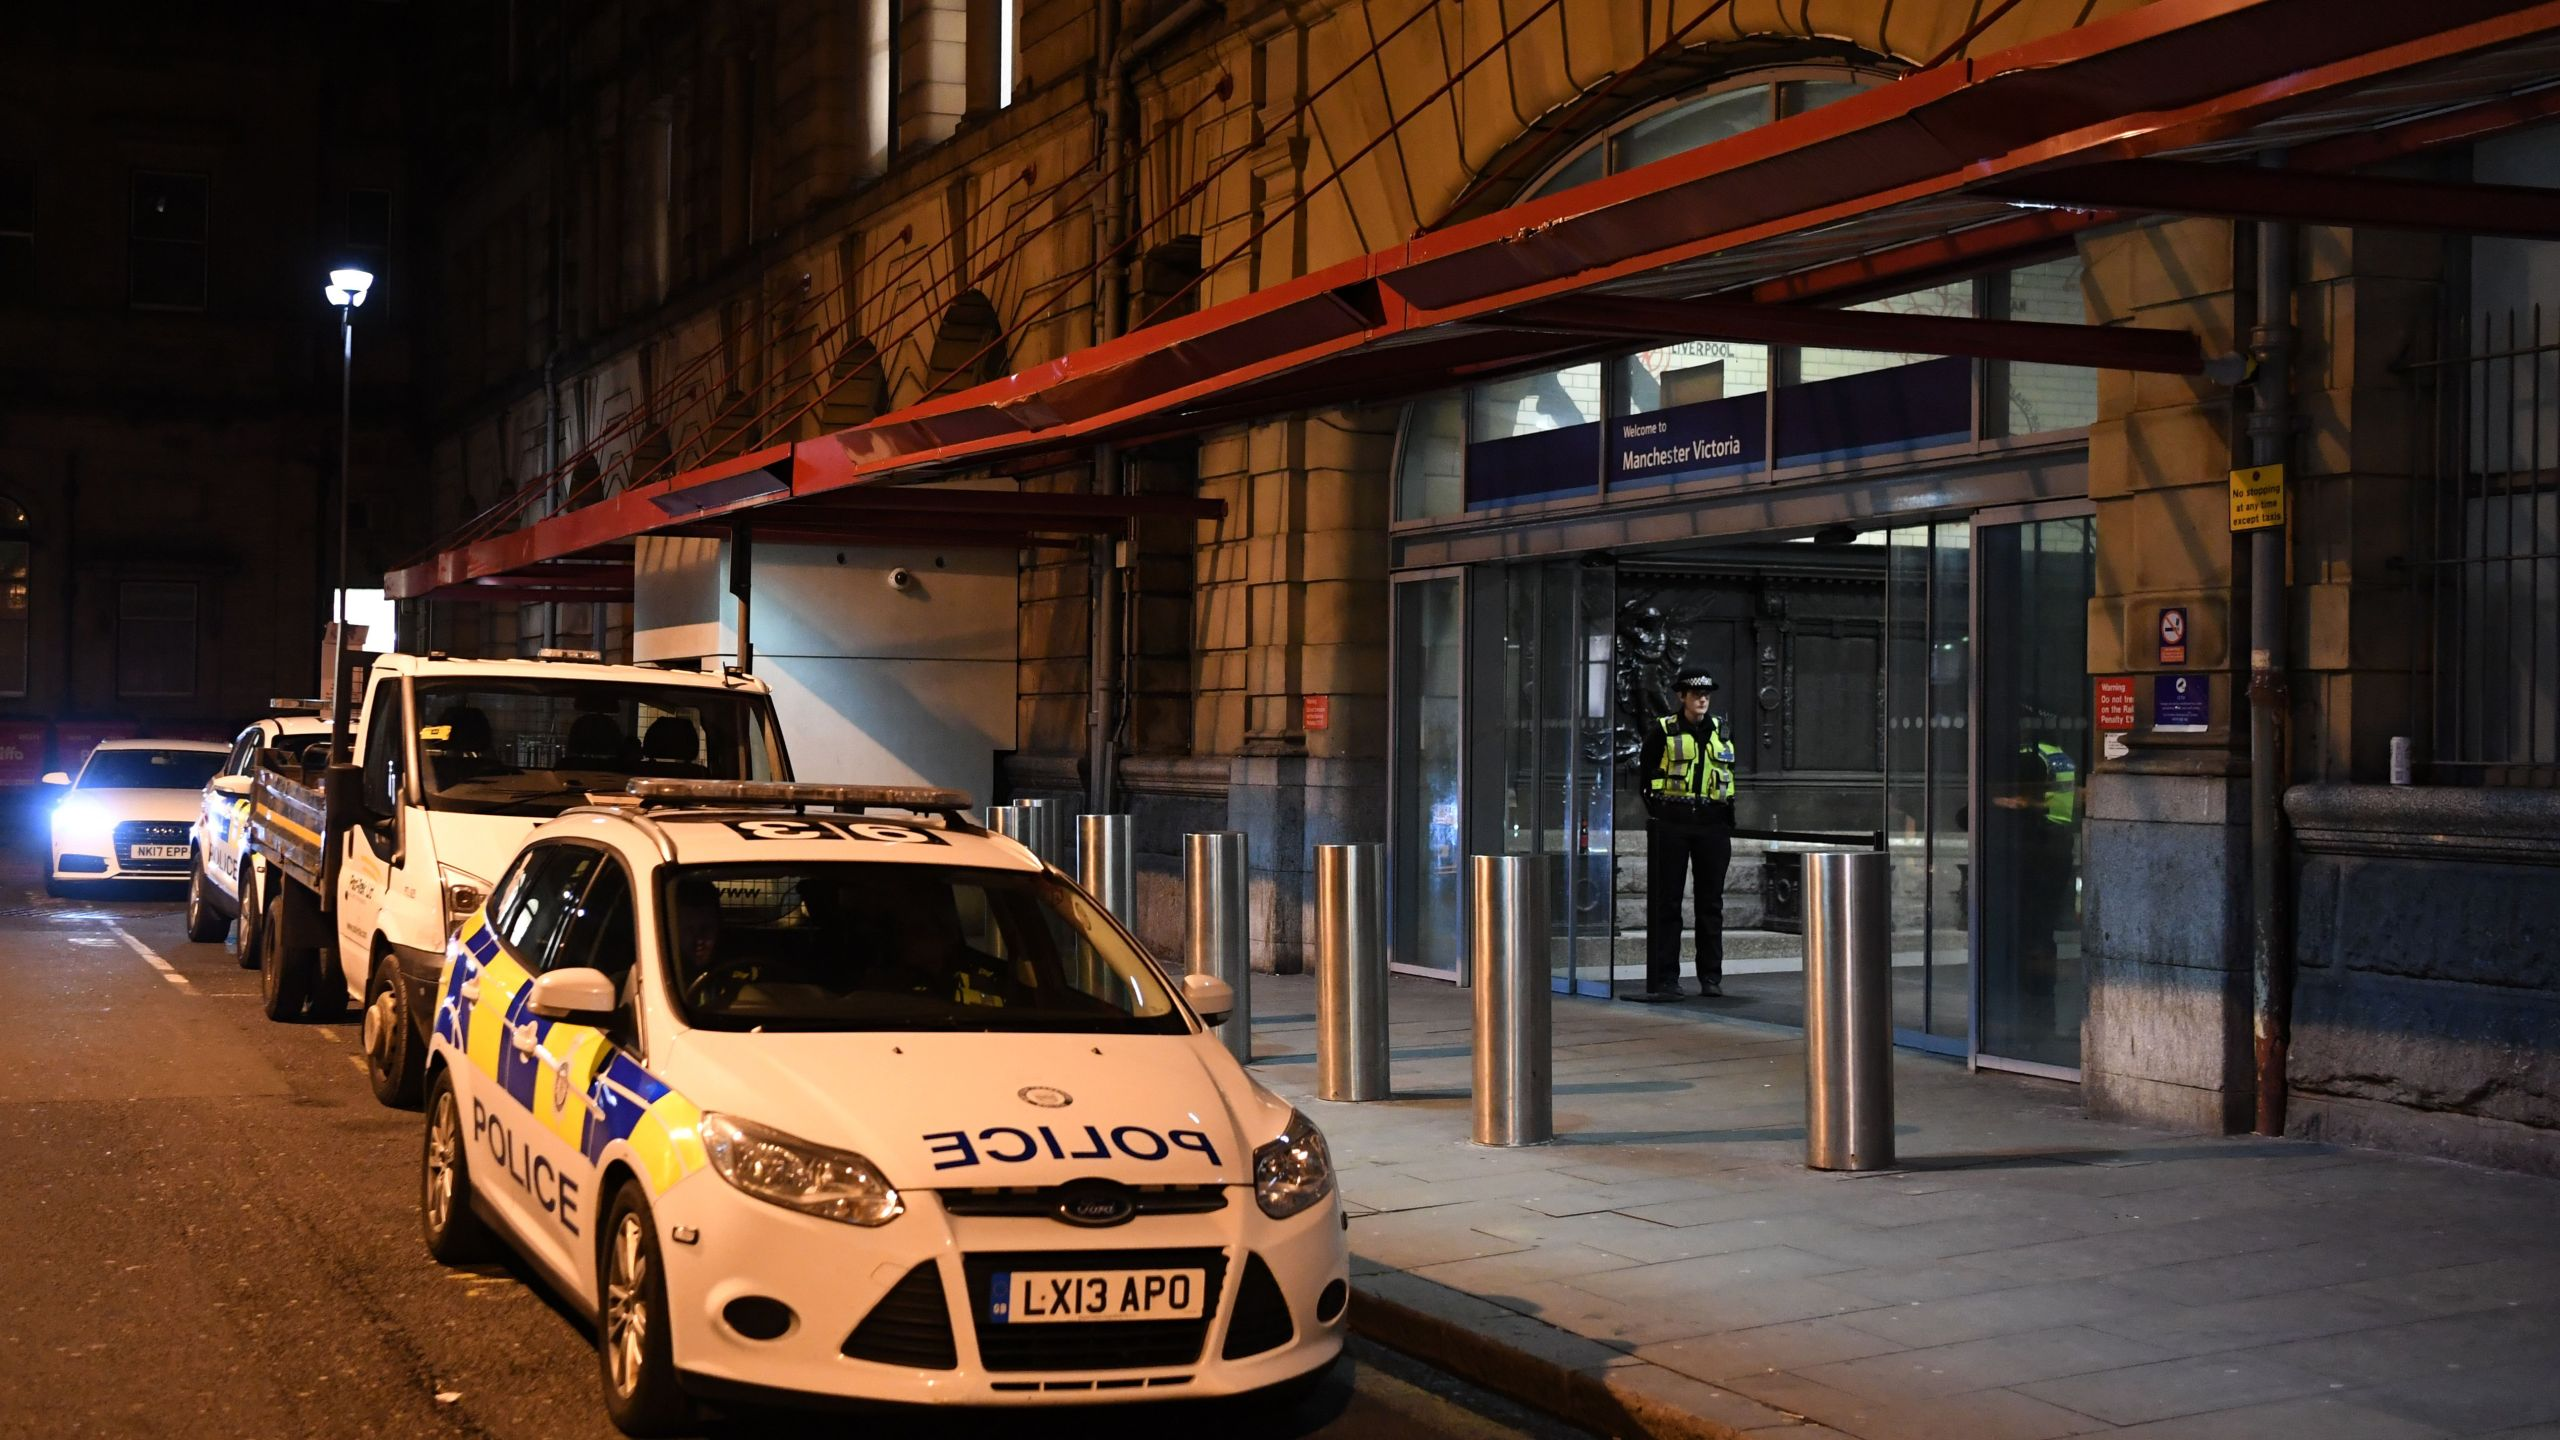 Police officers stand near a cordon at Manchester Victoria Station, in Manchester on January 1, 2019, following a stabbing on December 31, 2018. (Credit: PAUL ELLIS/AFP/Getty Images)